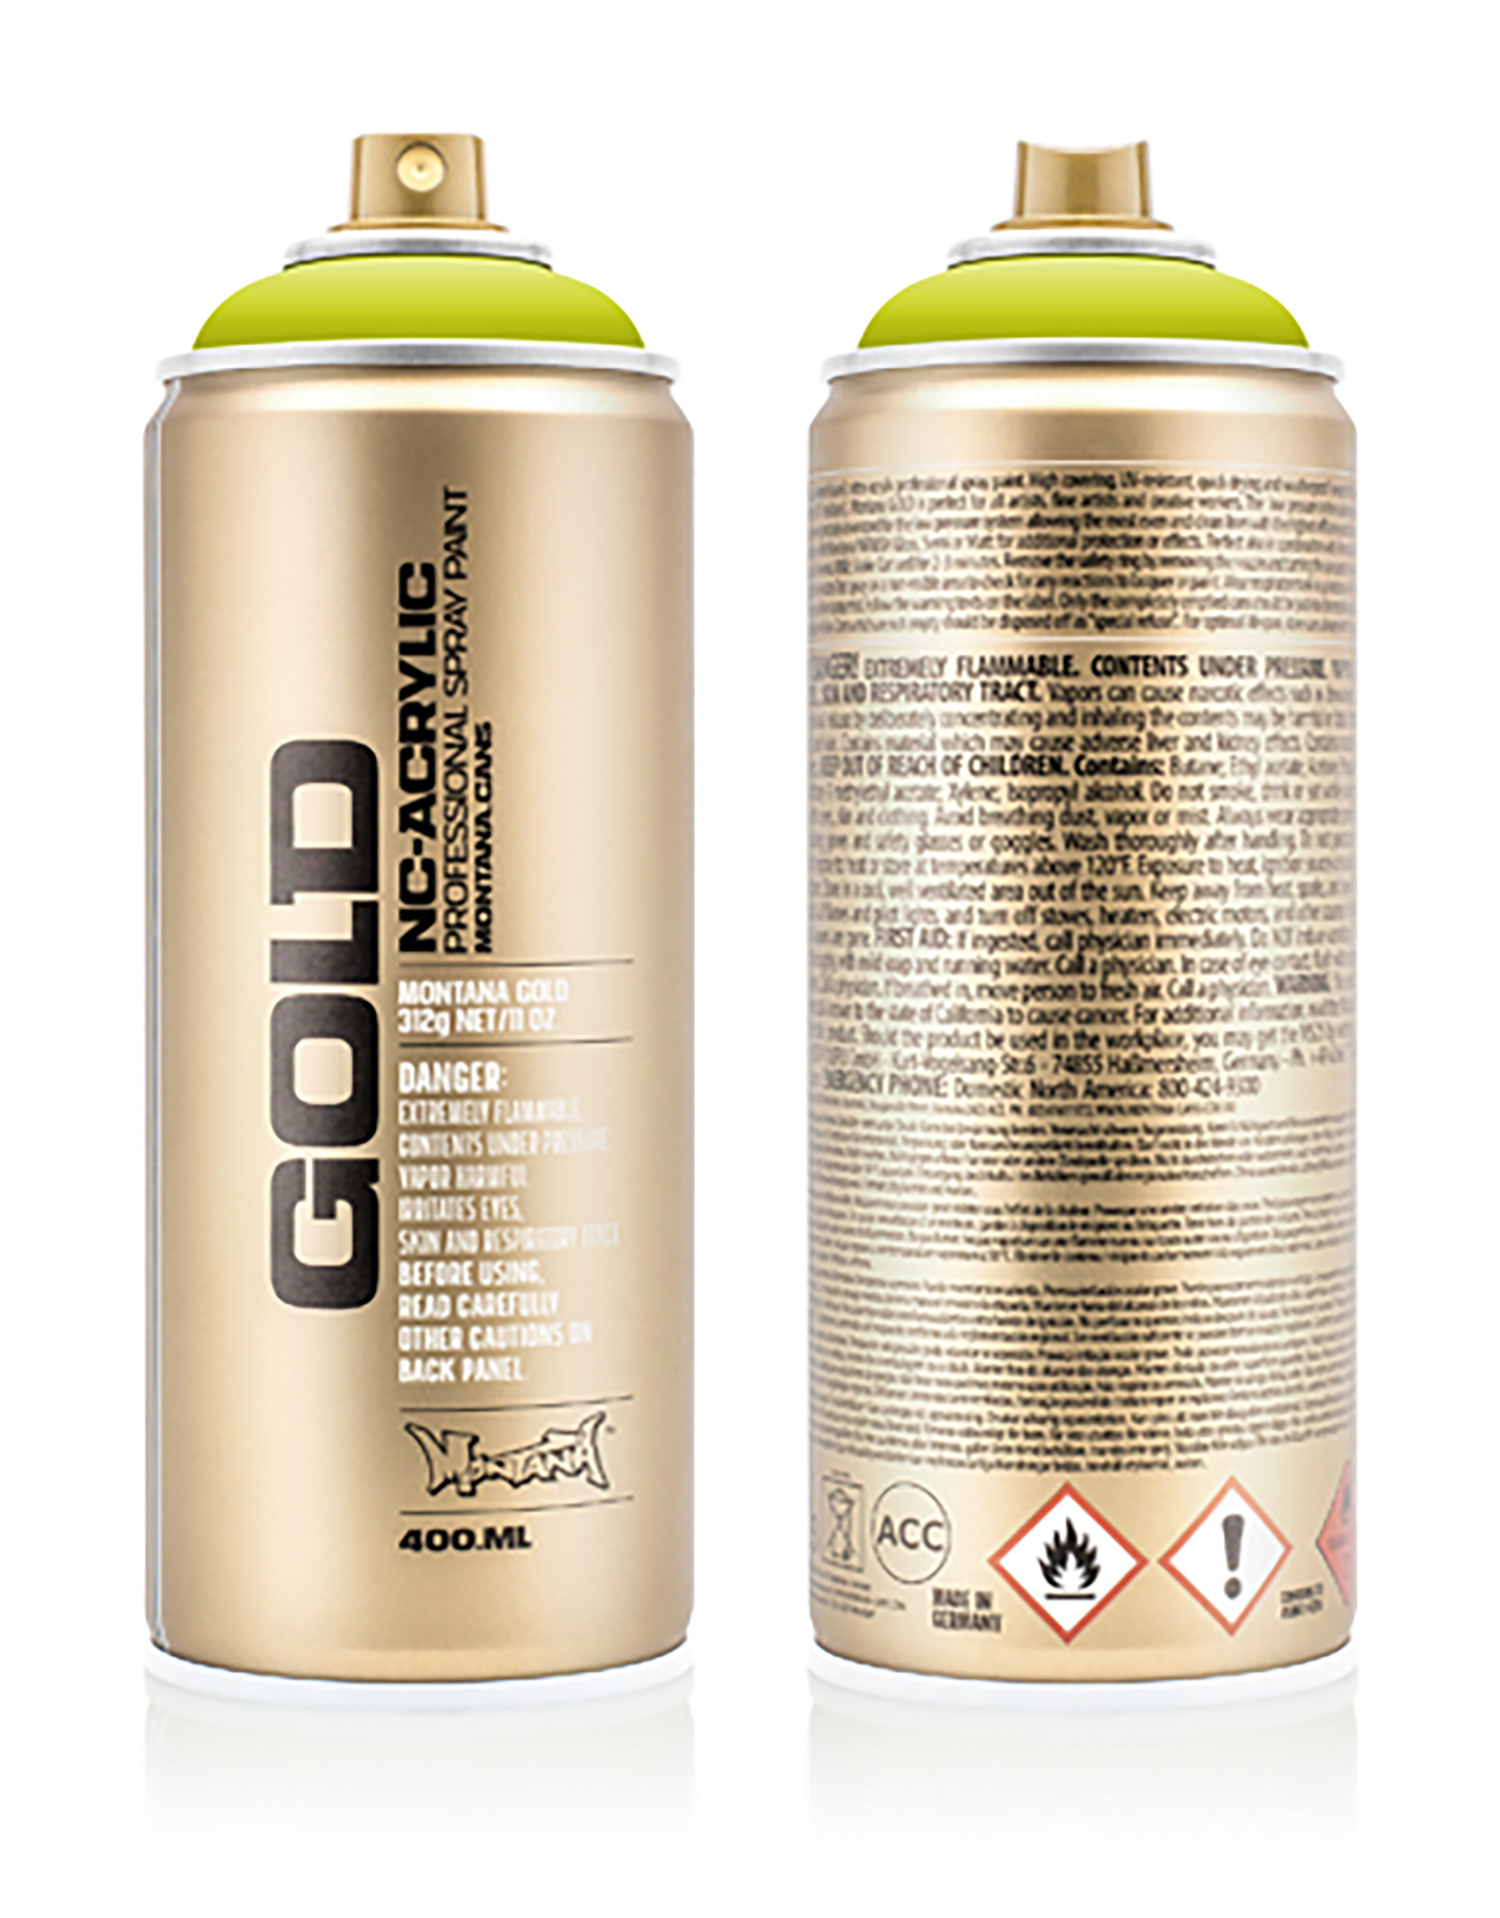 MONTANA-GOLD-SPRAY-400ML-CL-6320